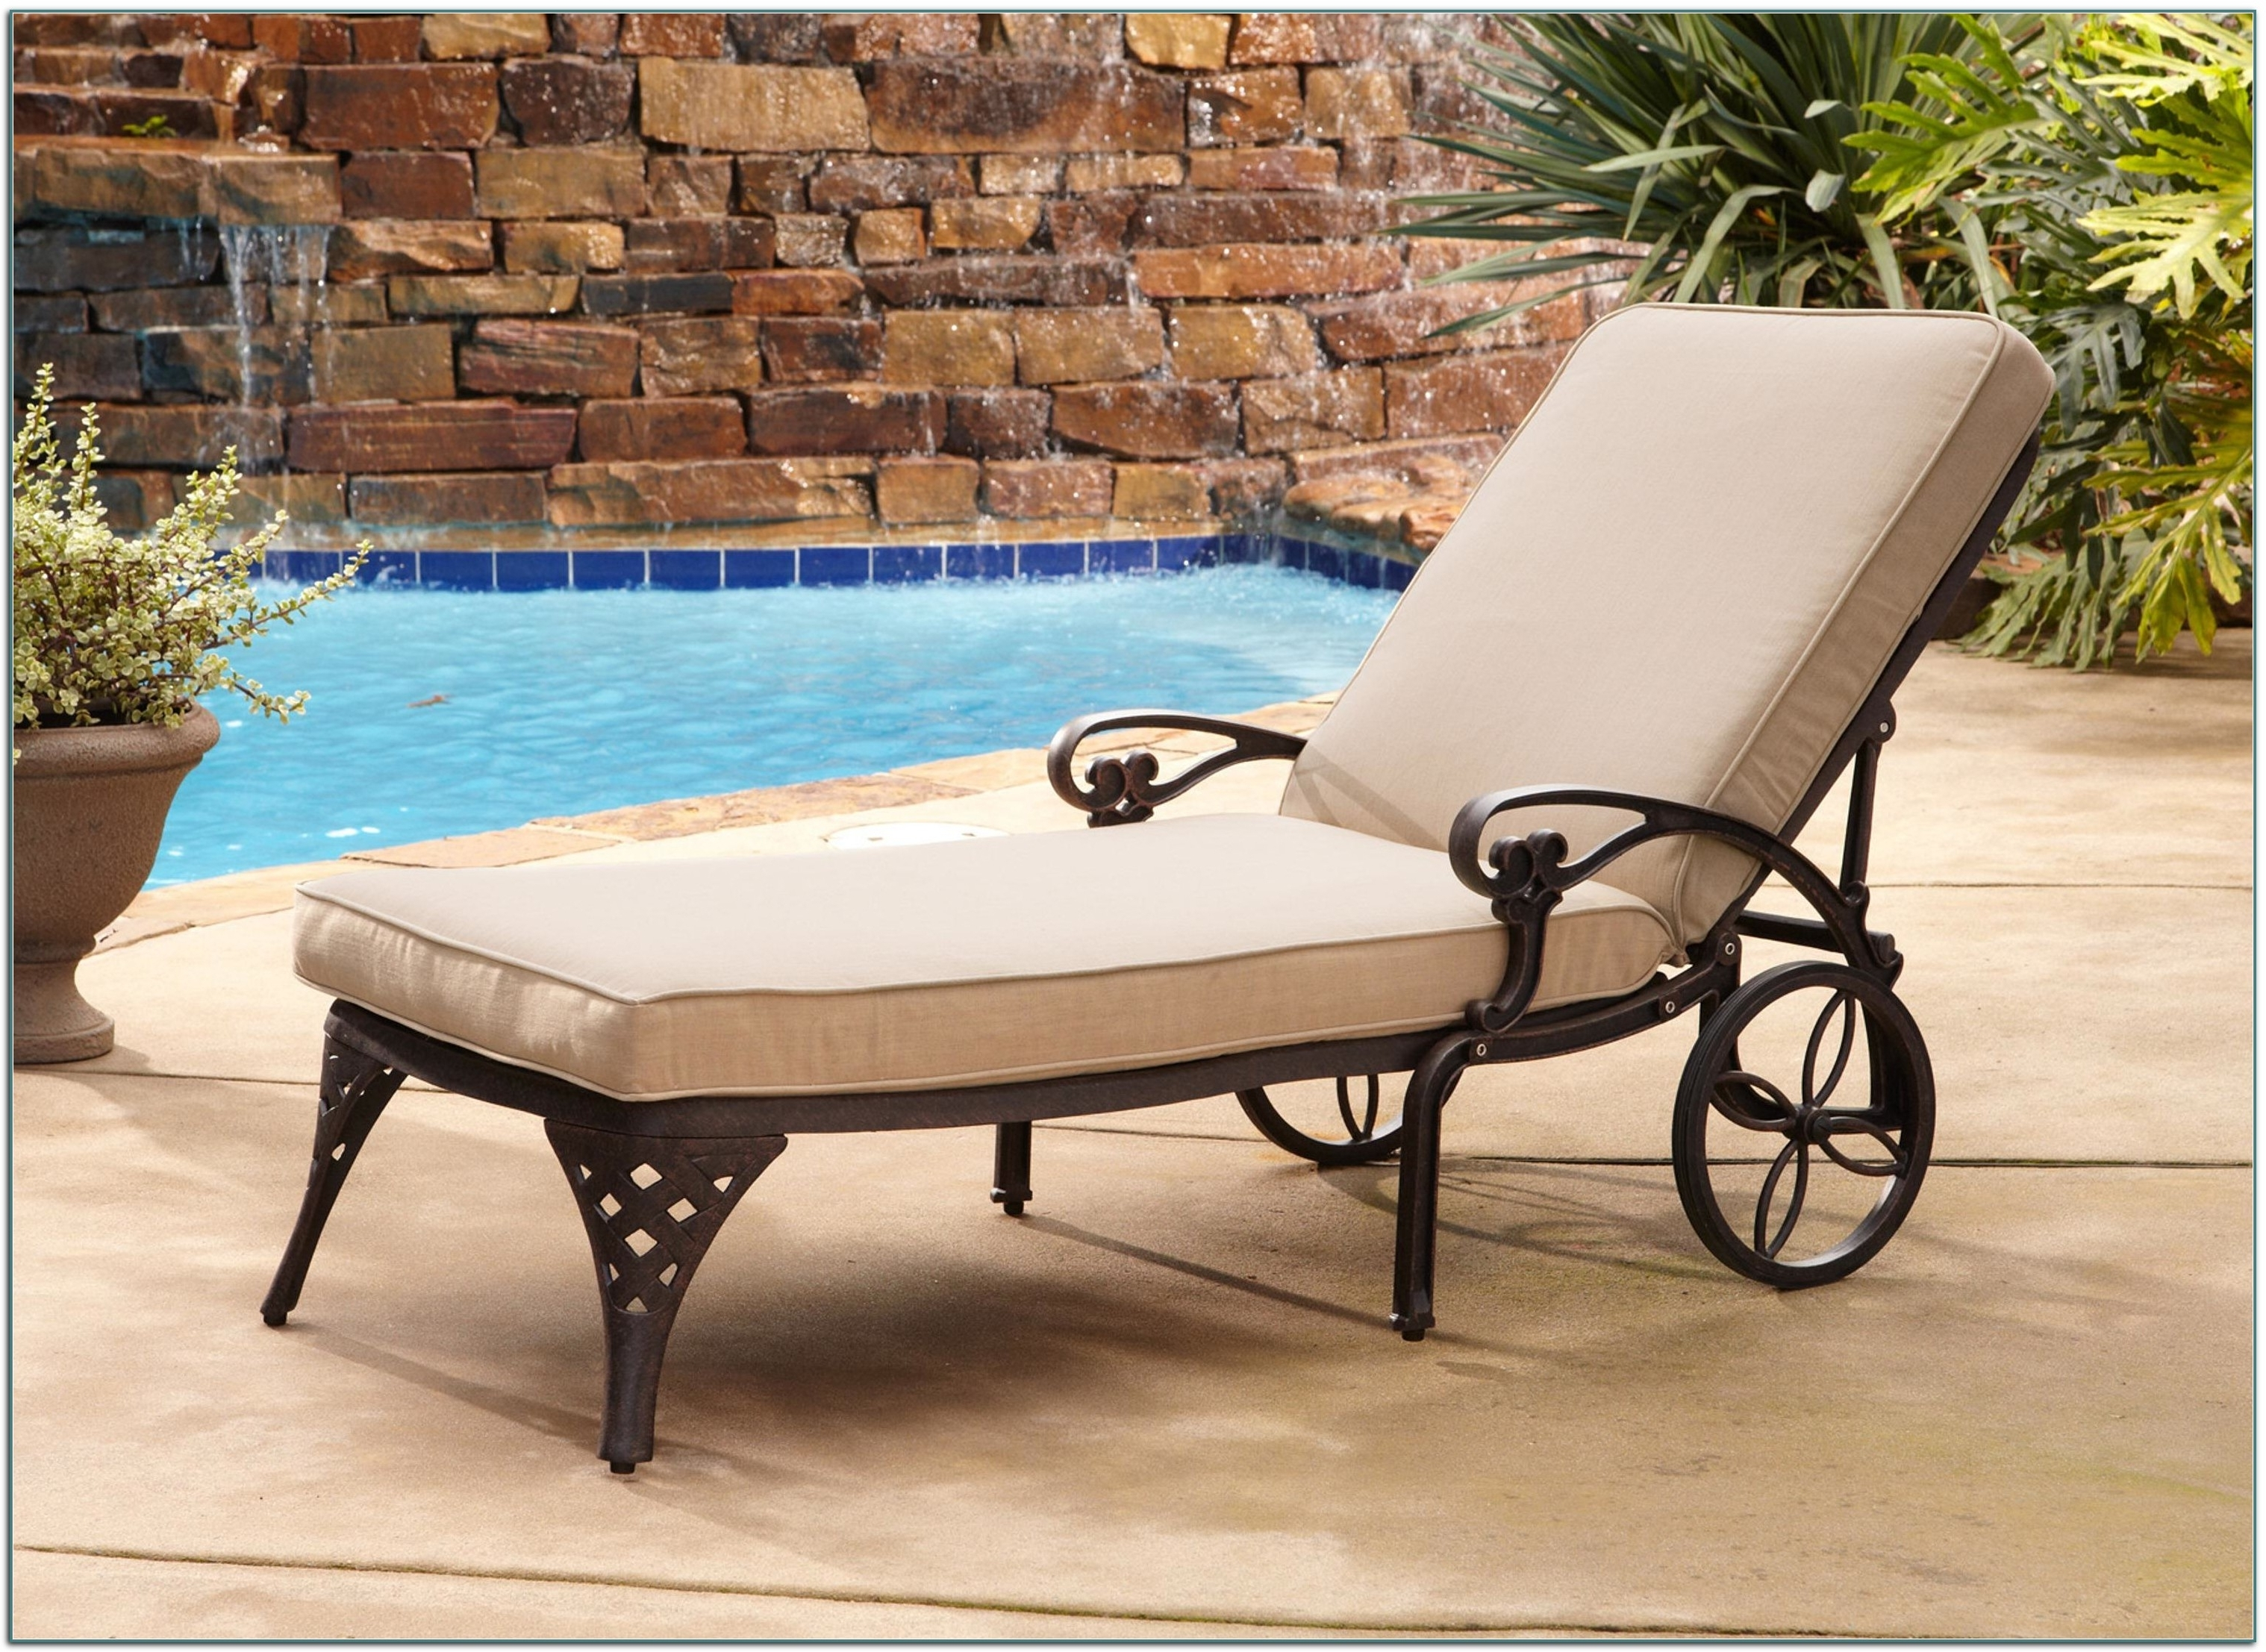 Chaise Lounge Chairs Outdoor Pool • Lounge Chairs Ideas For Latest Outdoor Chaise Lounge Chairs At Walmart (View 2 of 15)